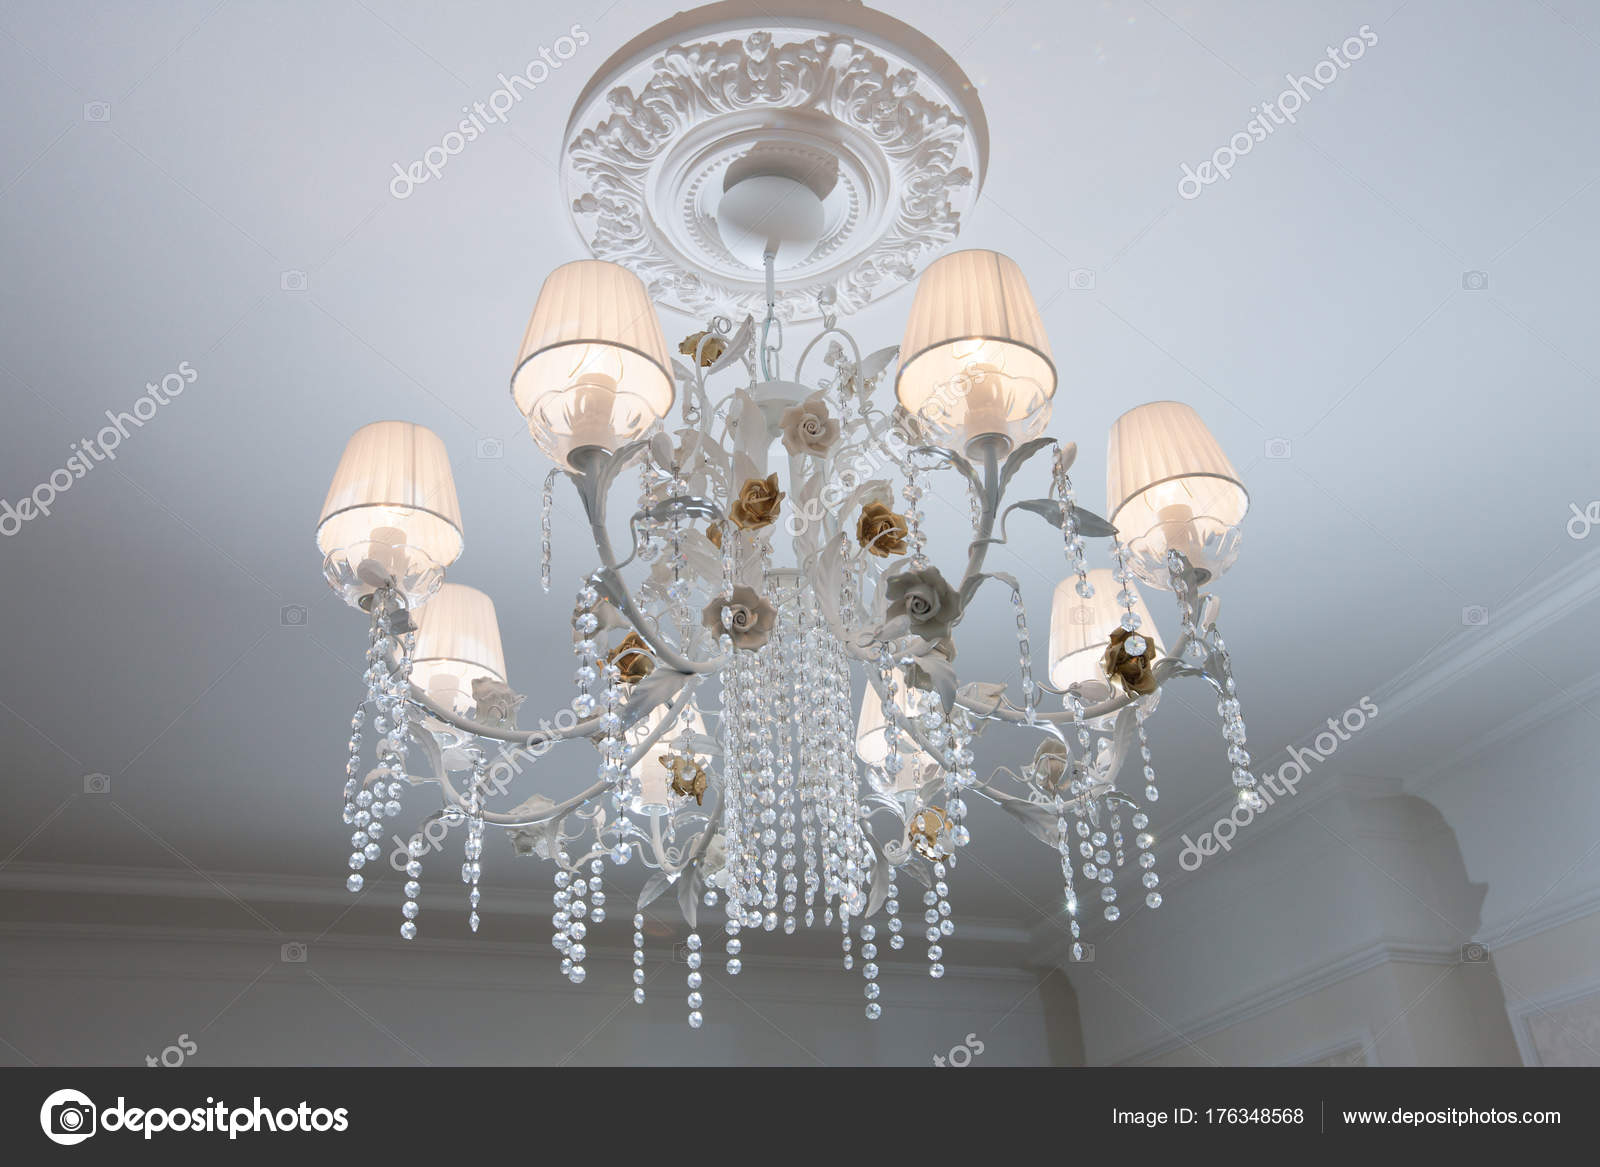 Beautiful bronze chandelier lighted plafonds chandelier ceiling beautiful bronze chandelier lighted plafonds chandelier ceiling chandelier chain white stock photo mozeypictures Gallery